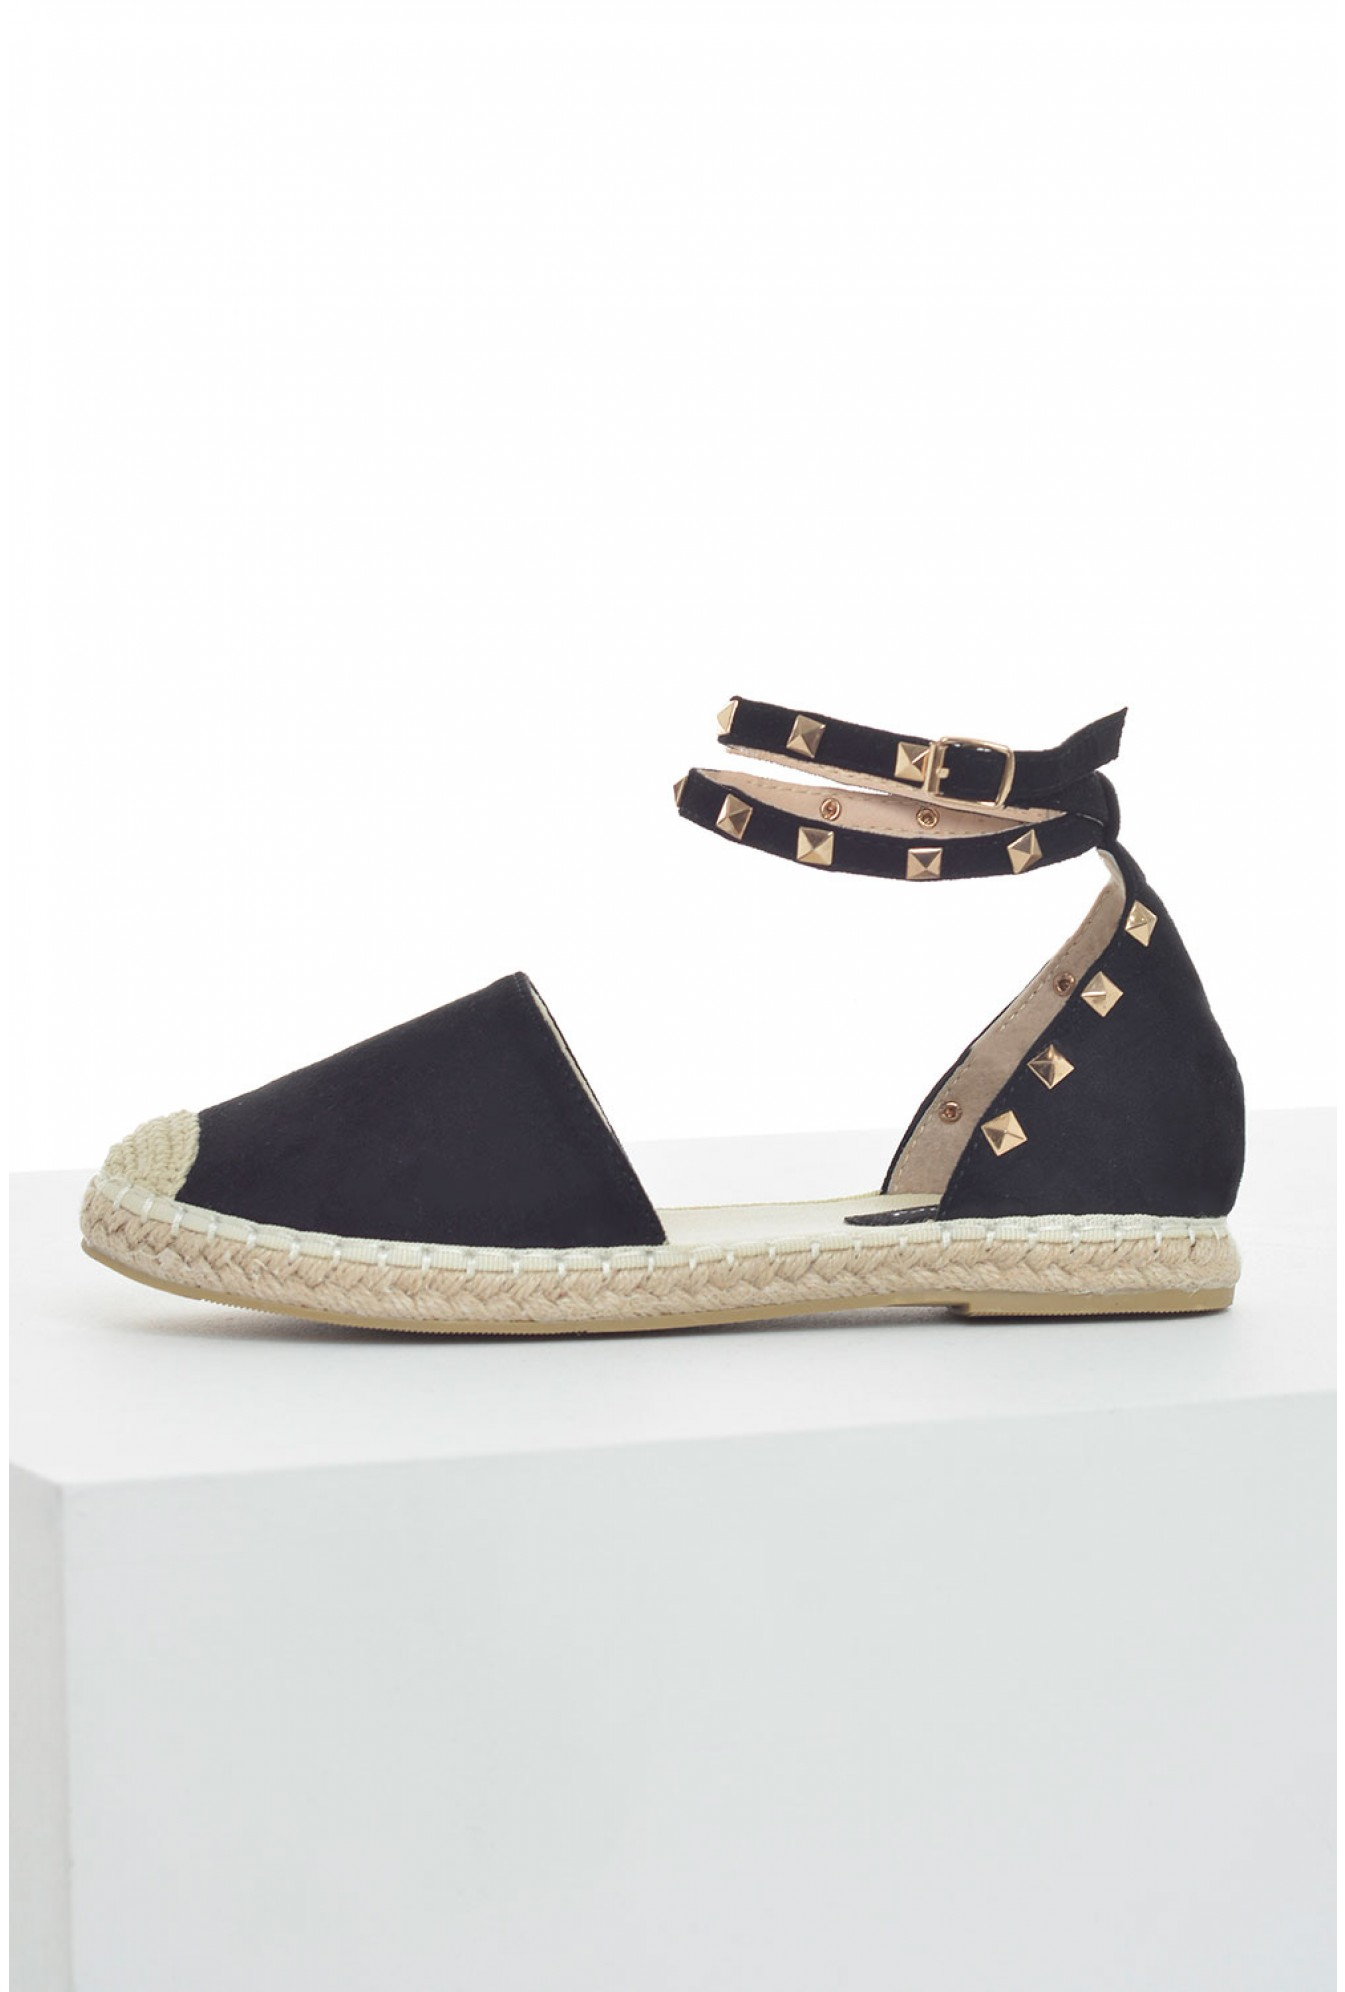 317970c83 No Doubt Parker Flat Espadrilles in Black Suede | iCLOTHING